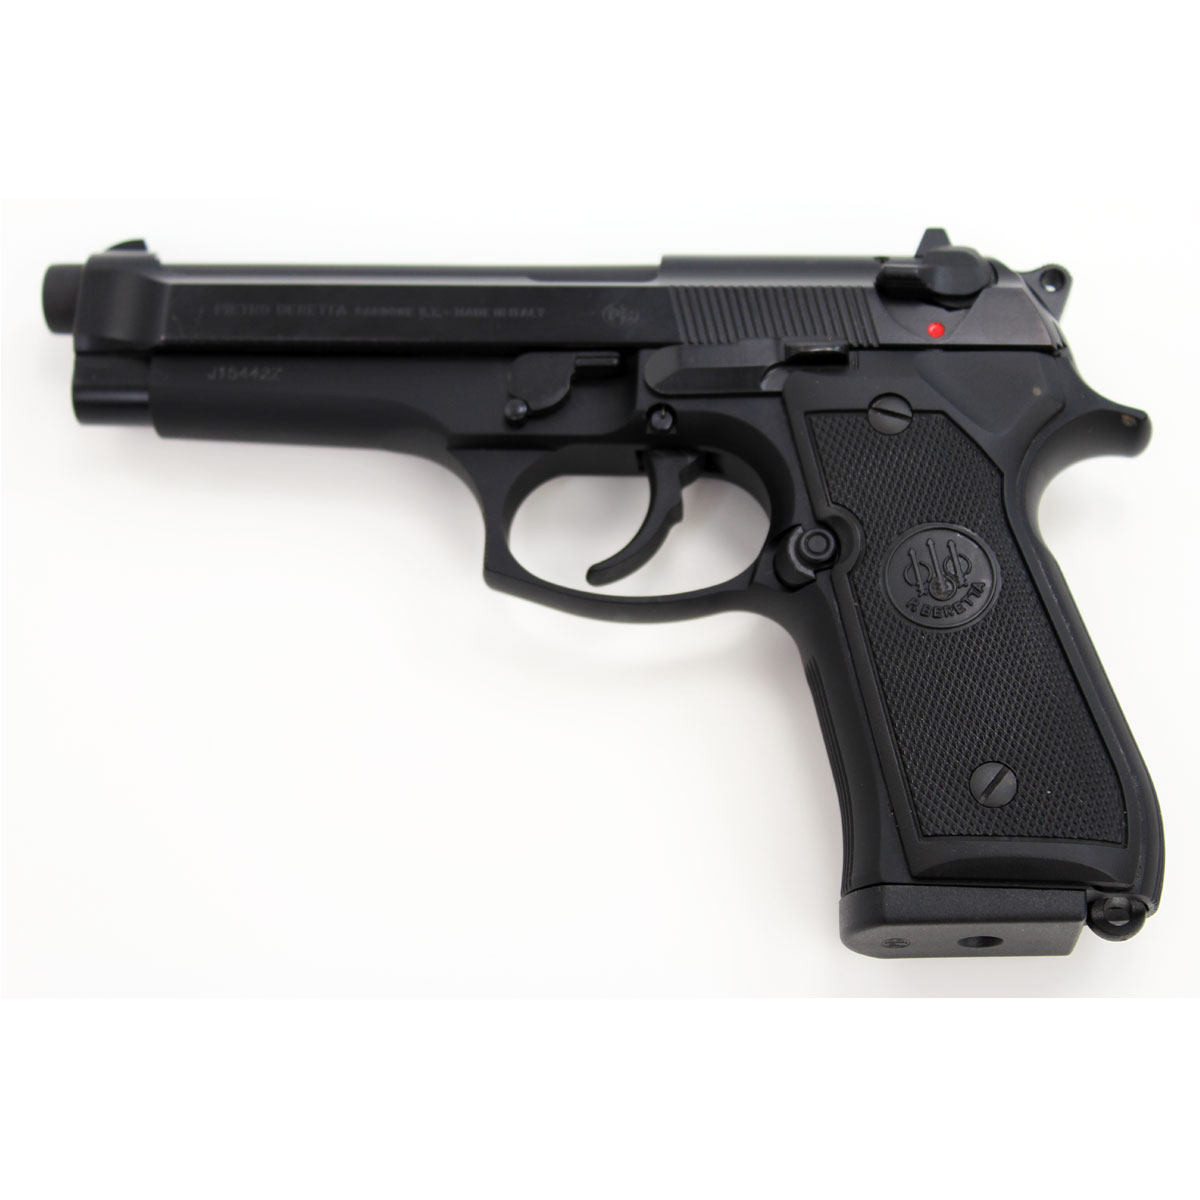 Used Beretta 92fs Pistol For Sale   9mm   15rd   Js92f C1 Ber 92fs 9 B